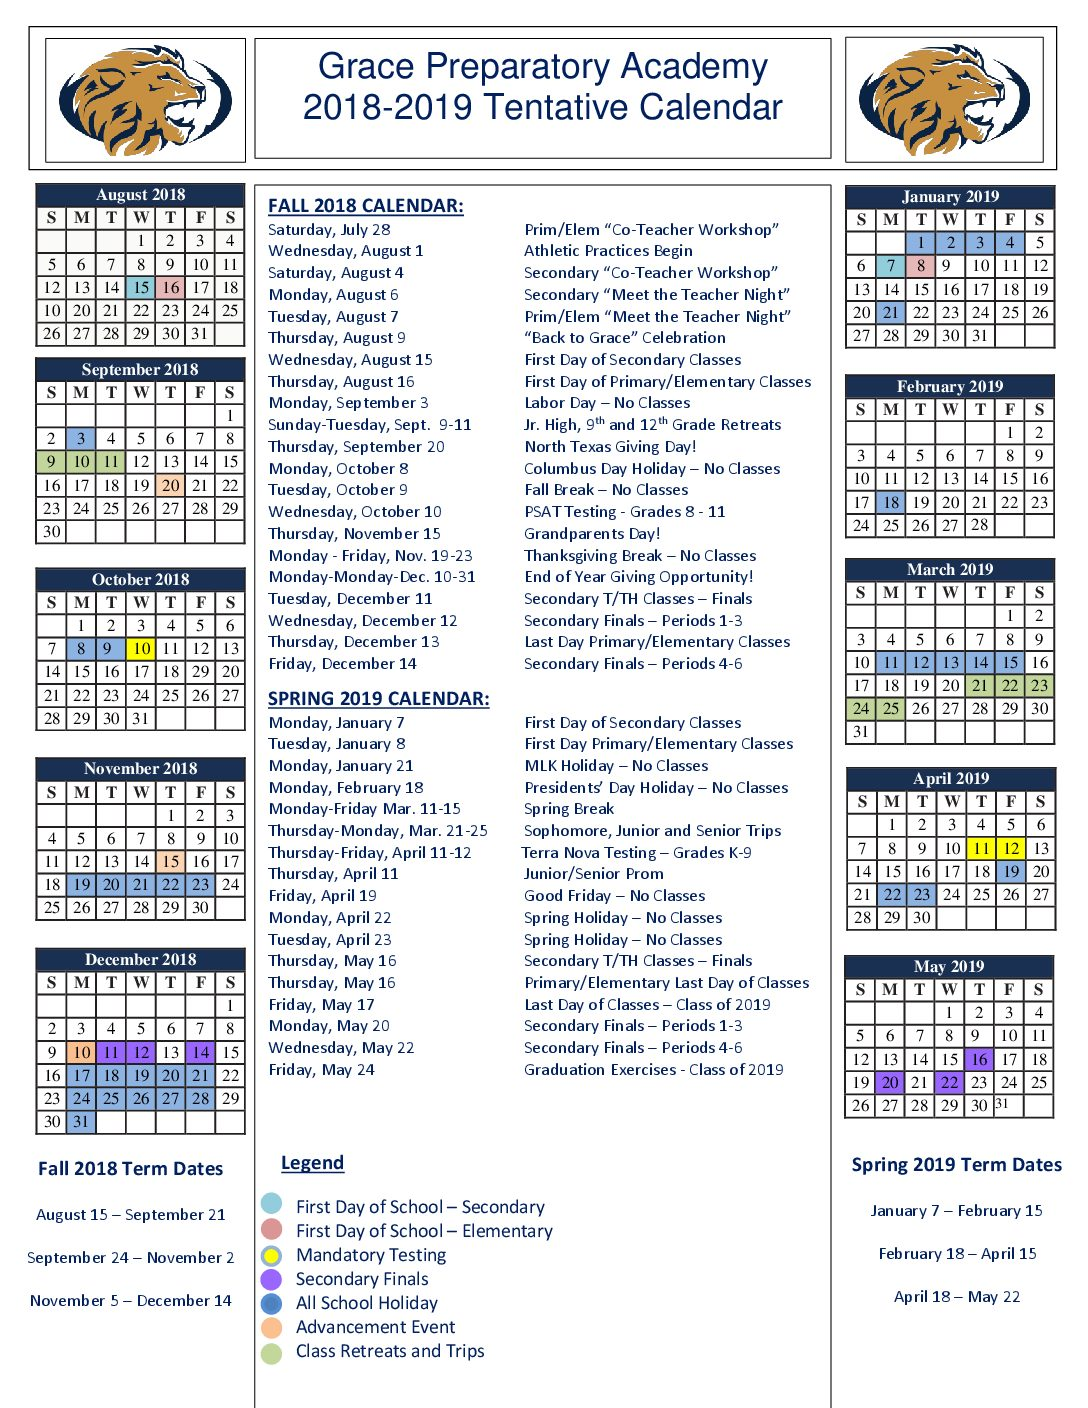 201819 school calendar grace prep private christian school arlington texas